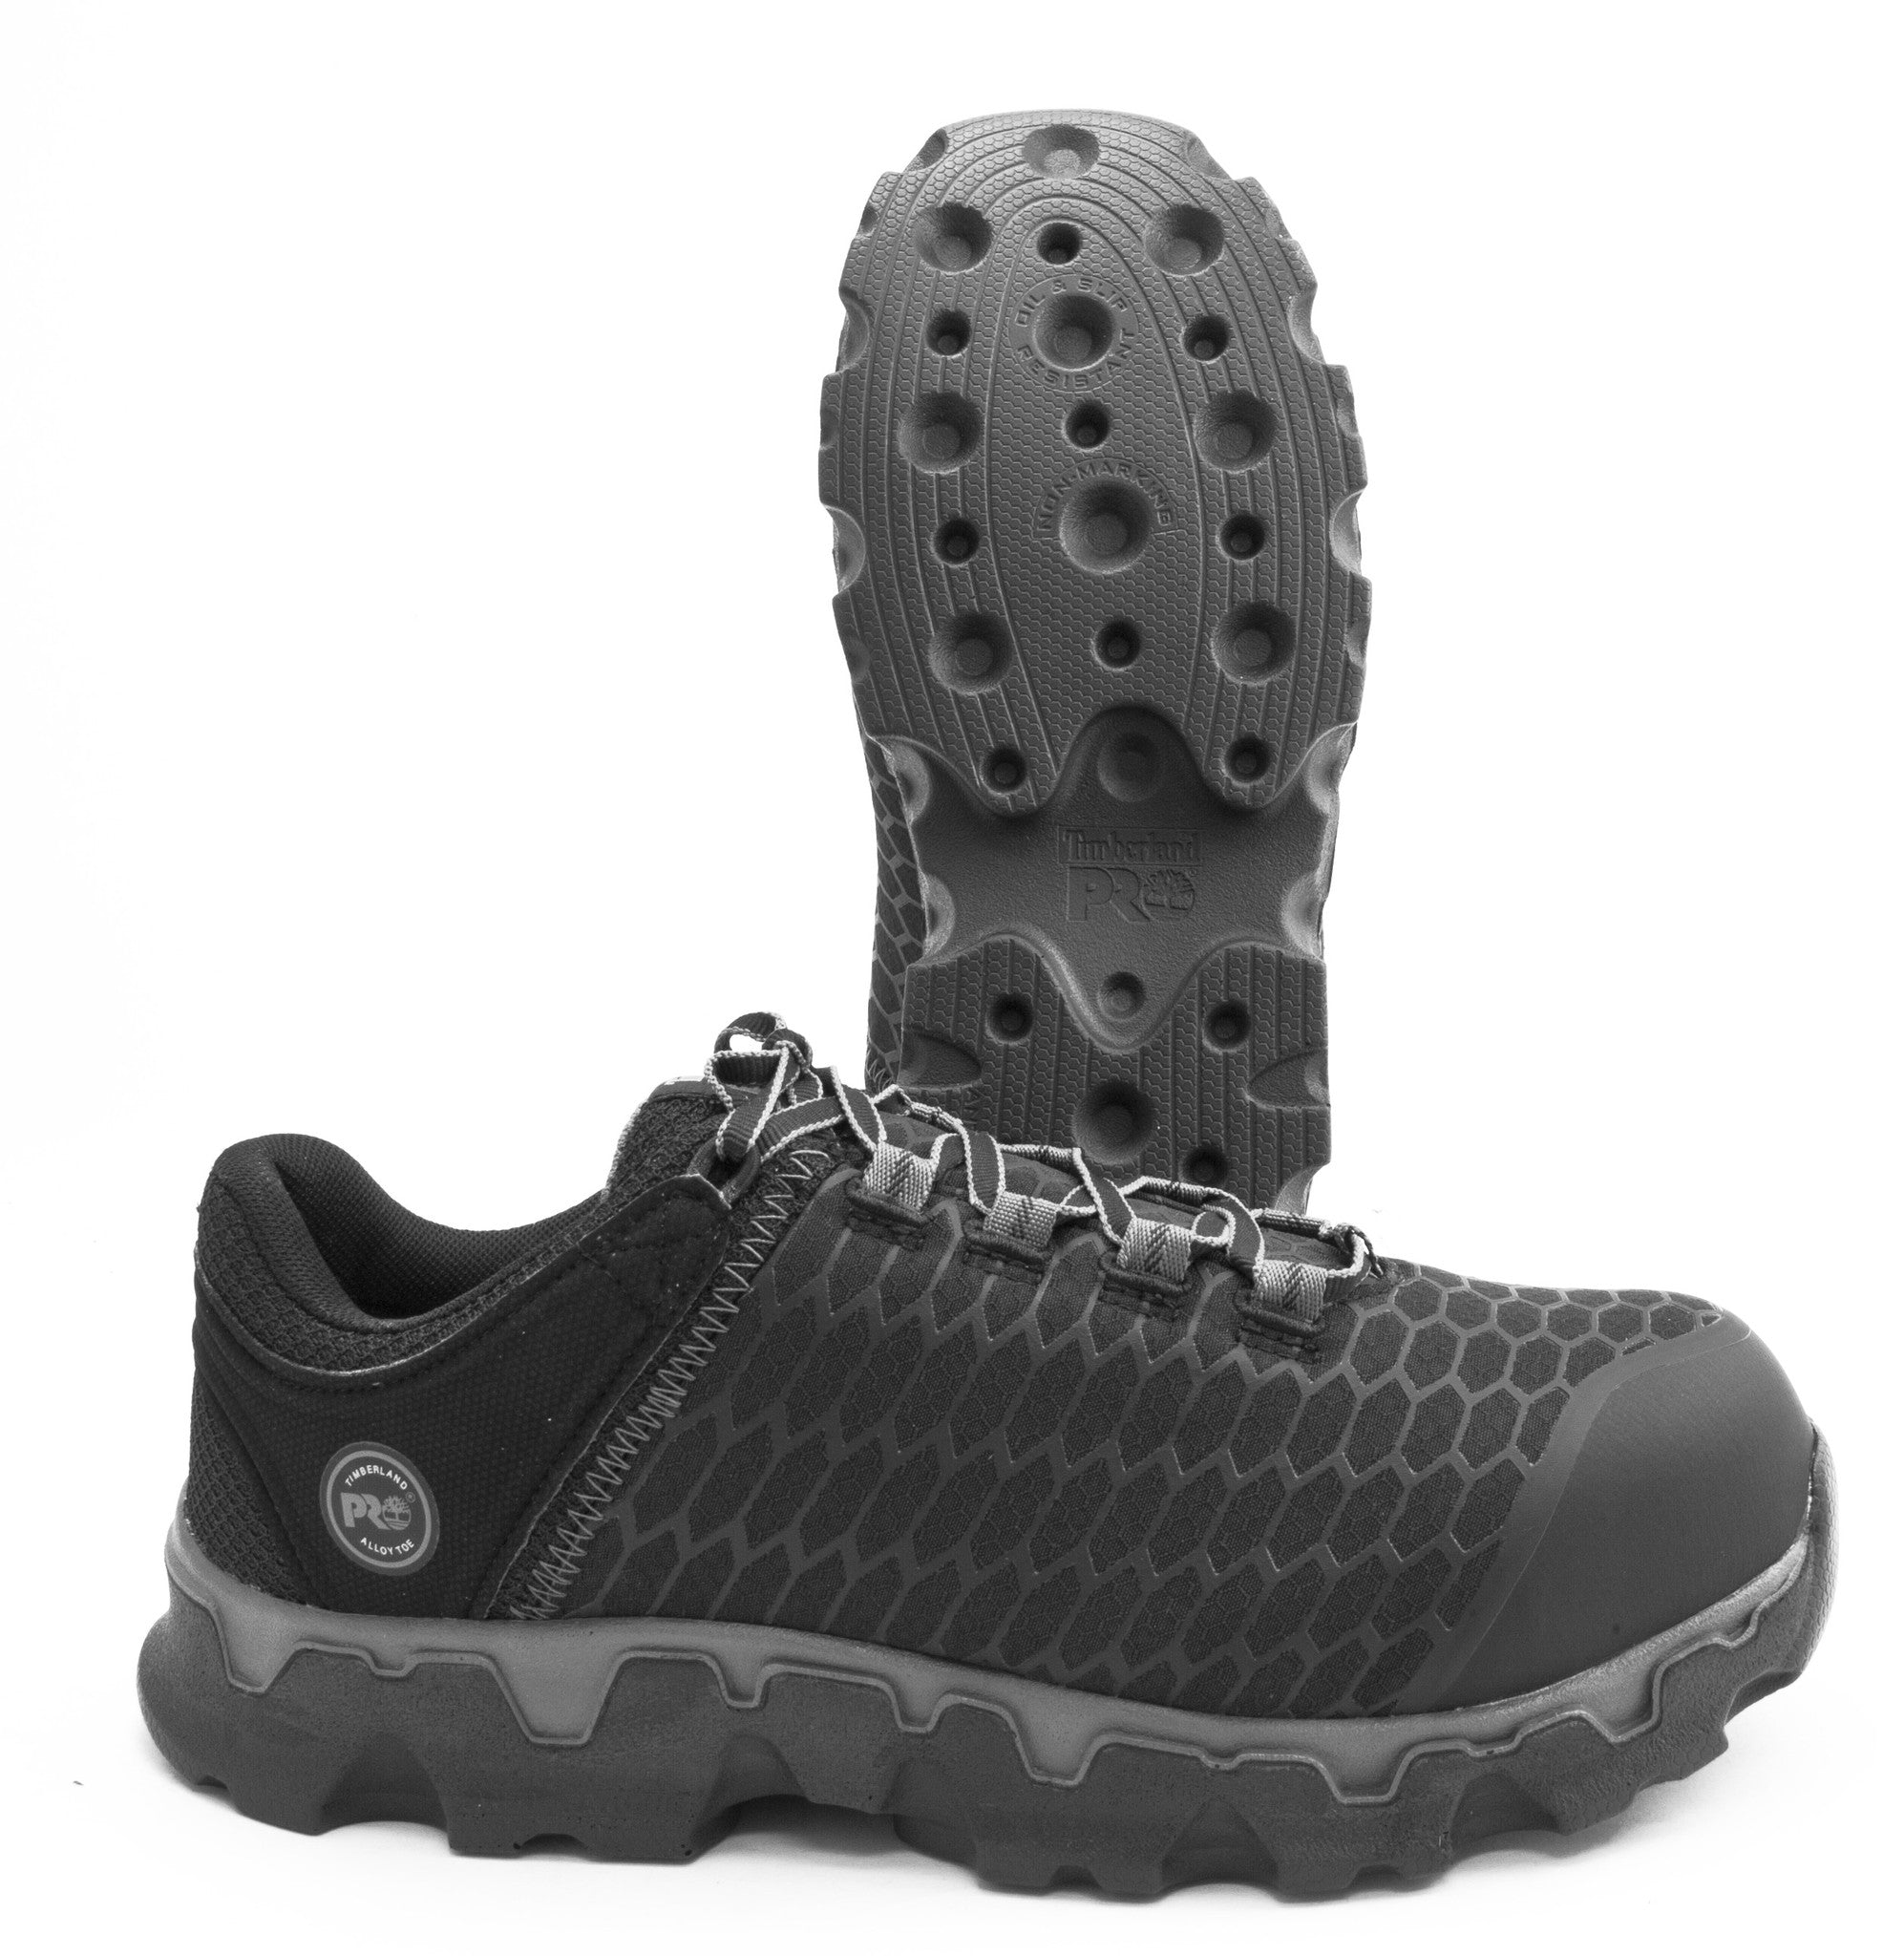 Timberland PRO Women's Powertrain Sport TB0A1B7F001, Non Marking OR SR AT EH Athletic Shoe